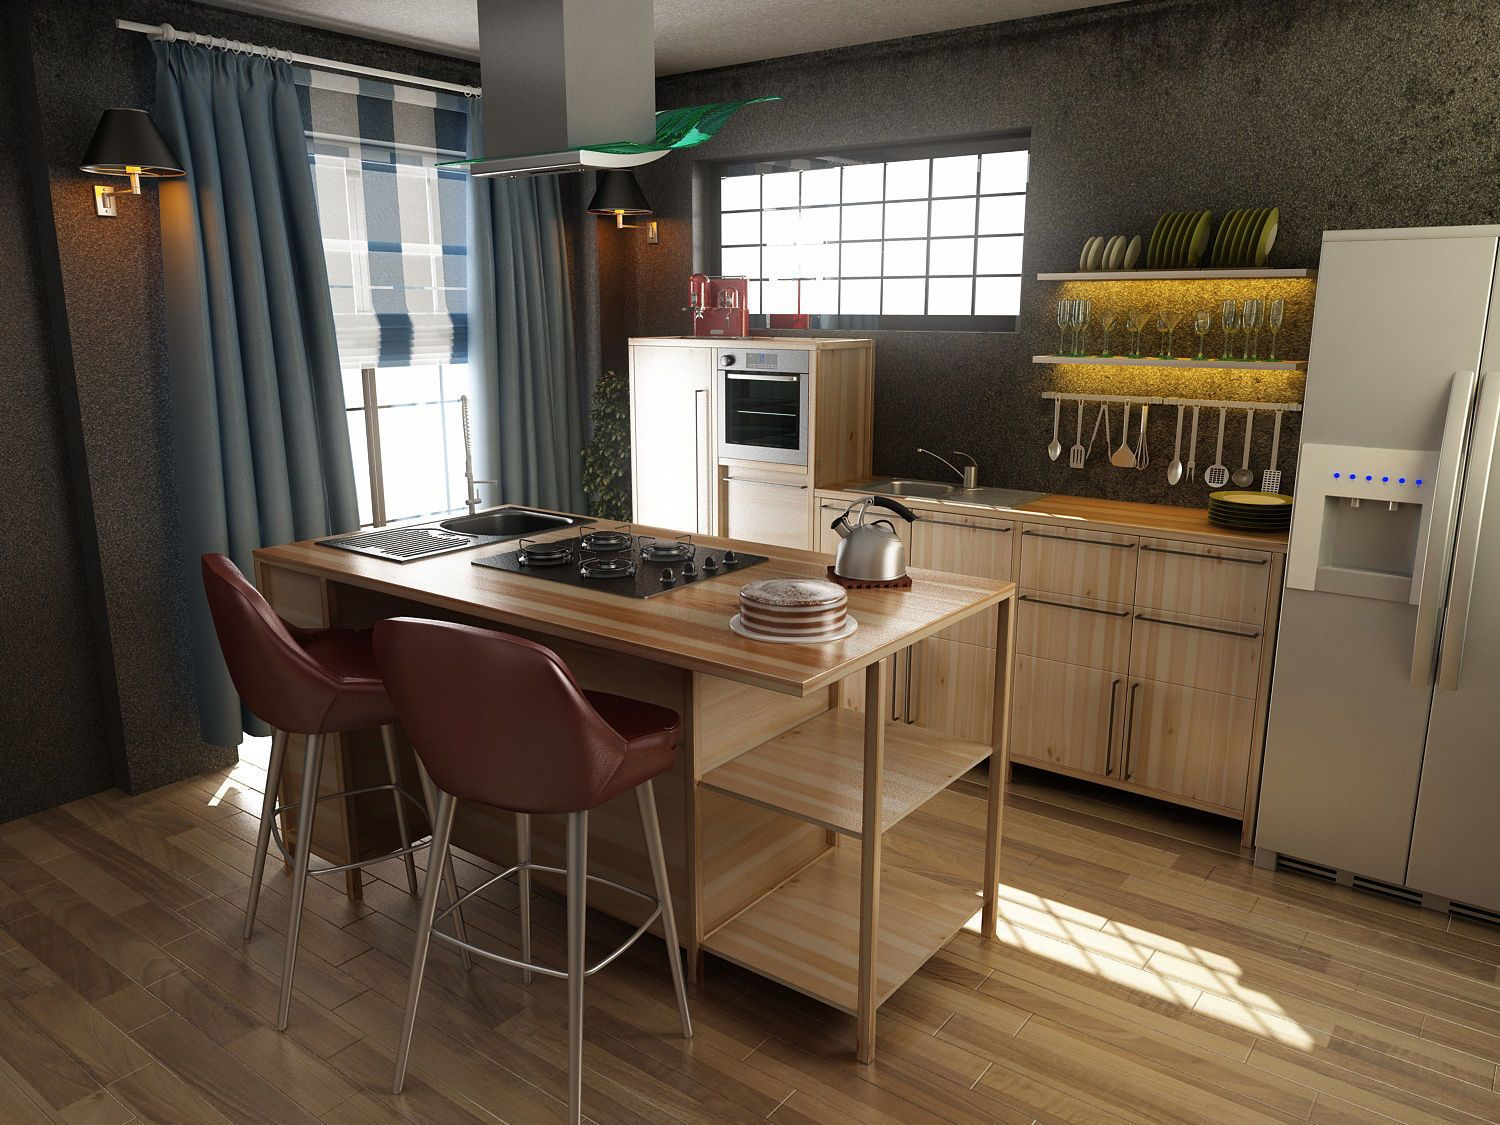 Grattarola Küchen Pin By Sricharan Yellajosyula On House Interiors Modern Kitchen